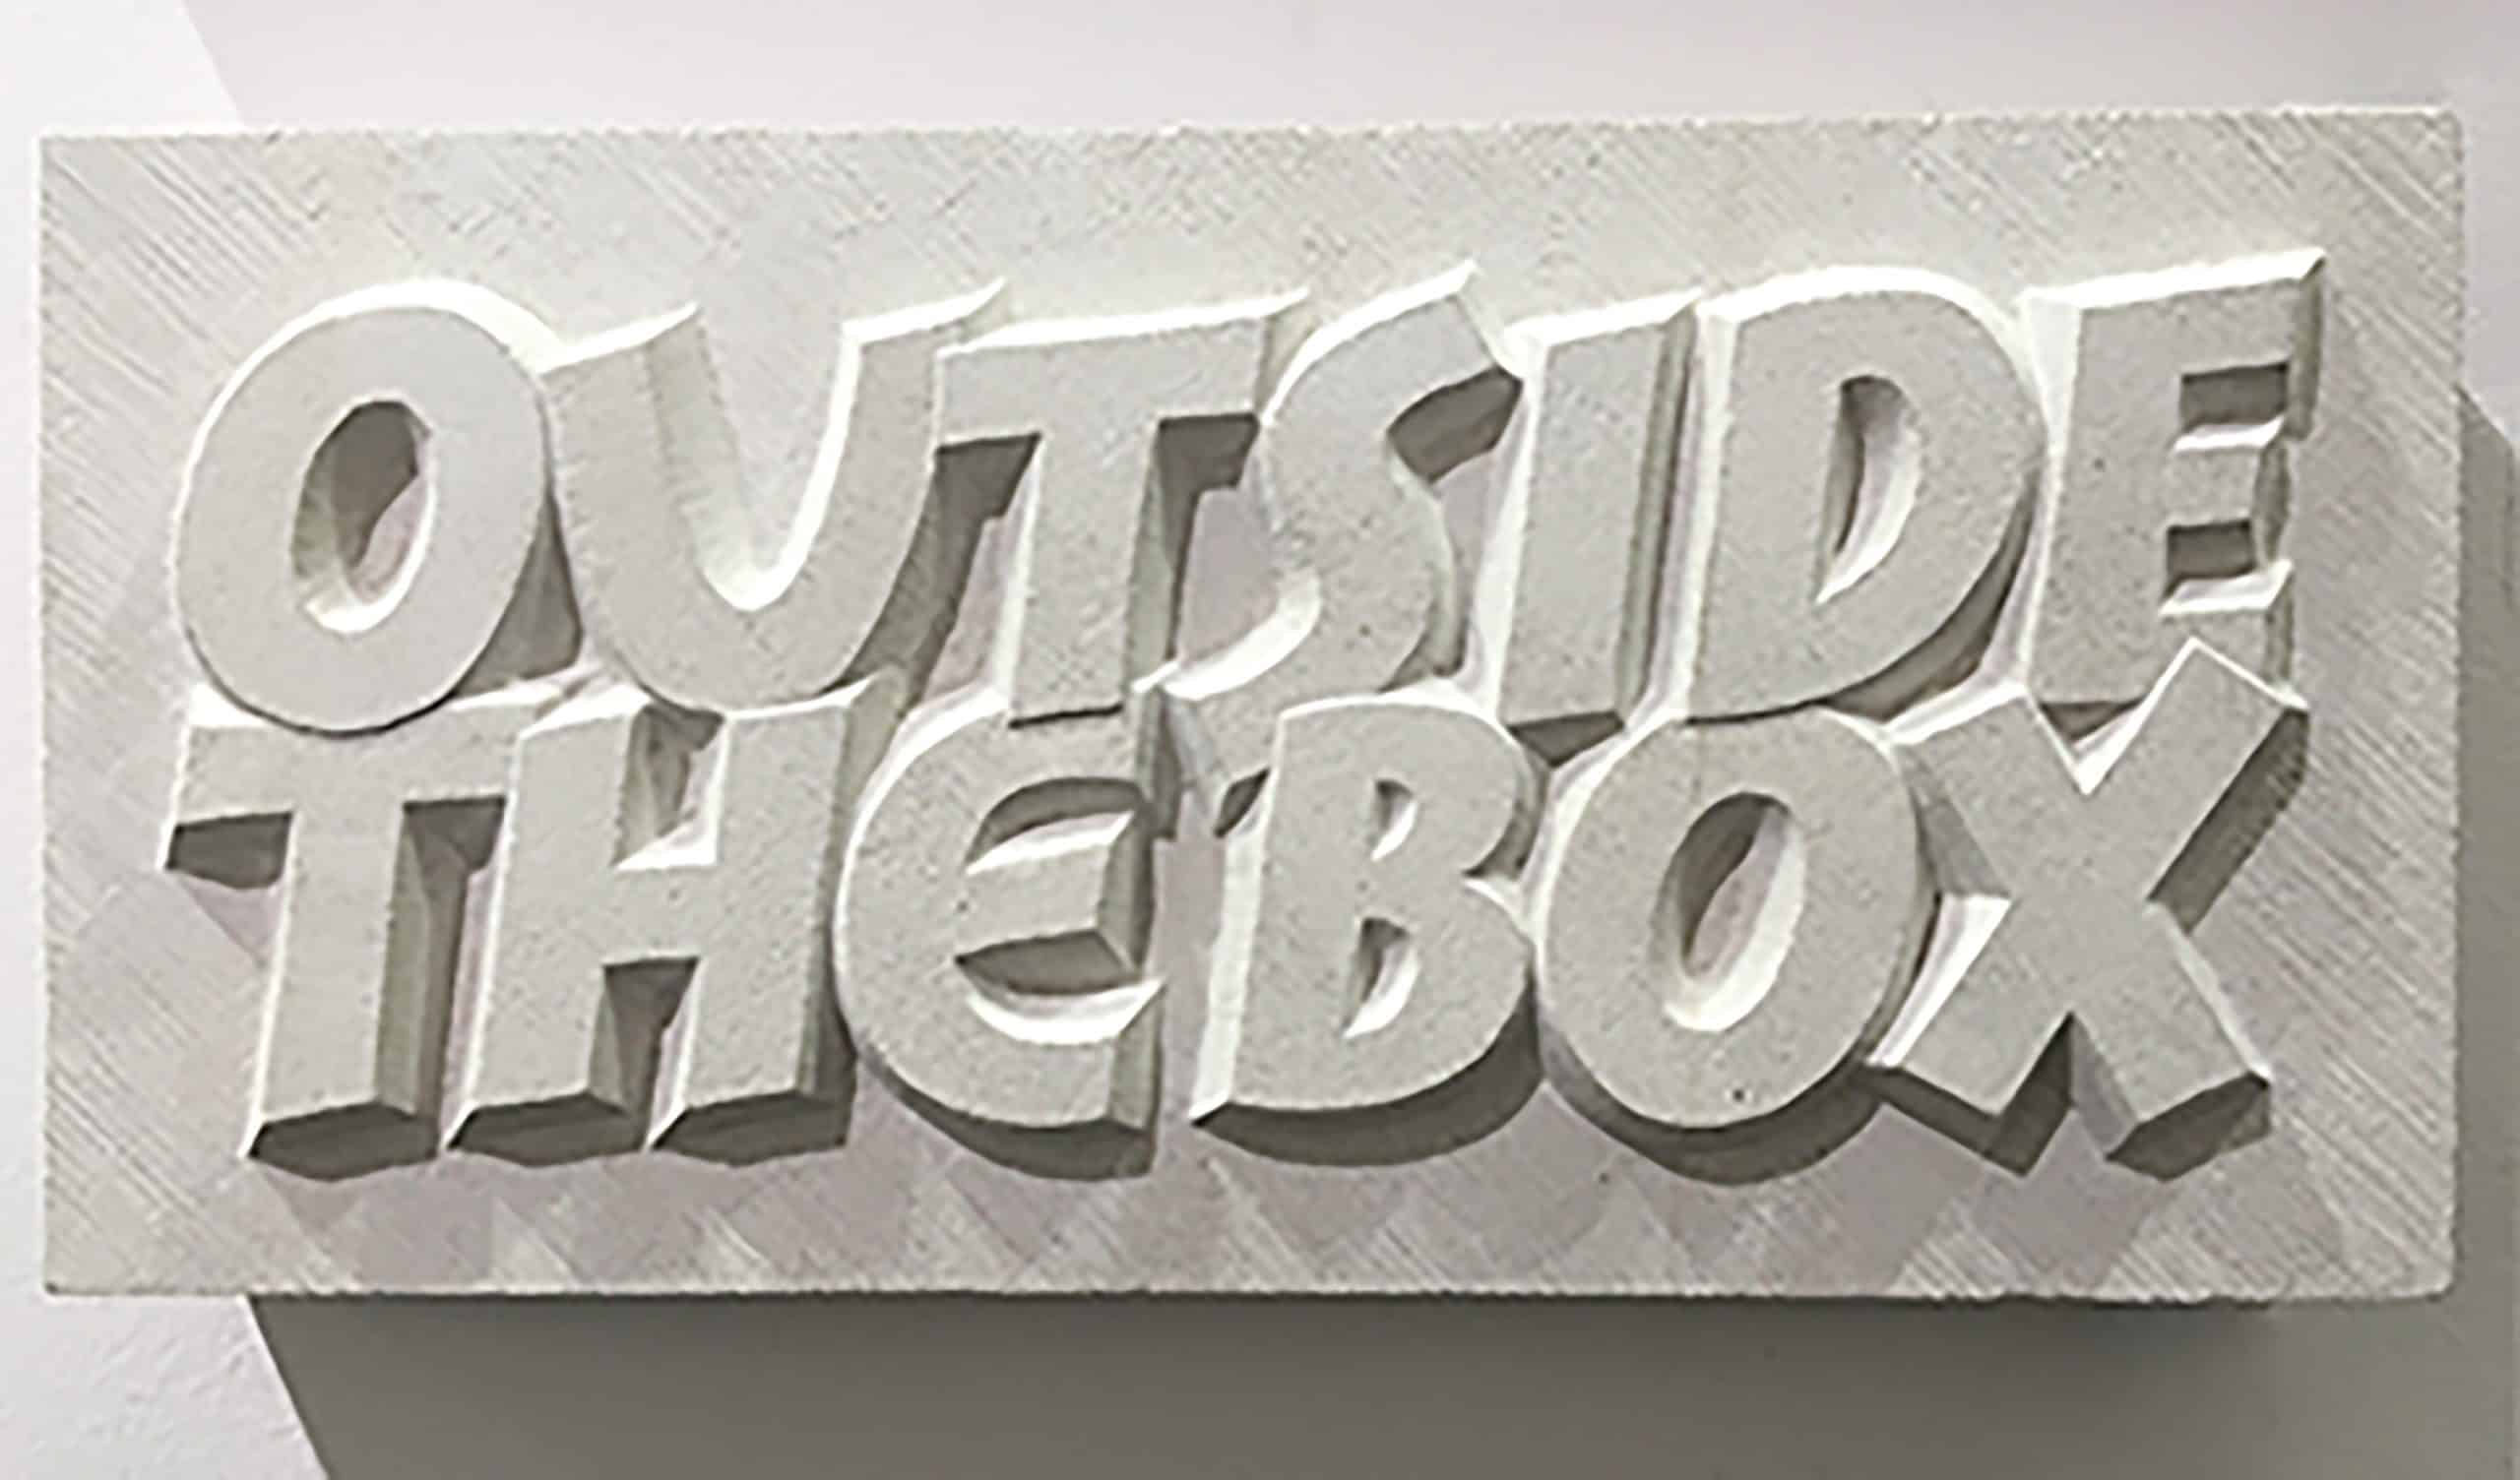 Raised letter carving reading 'Outside the Box' in a buff coloured limestone